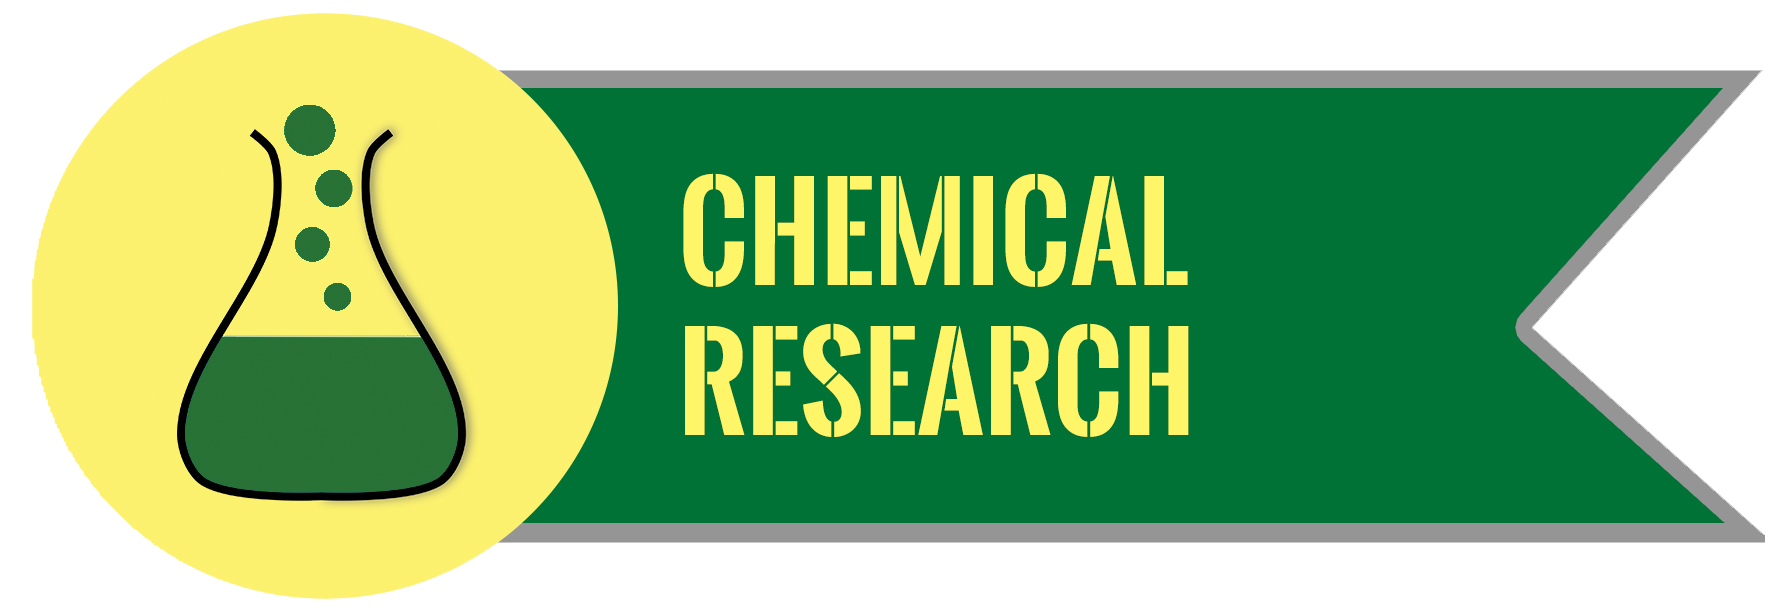 chemicalresearch3-768x266